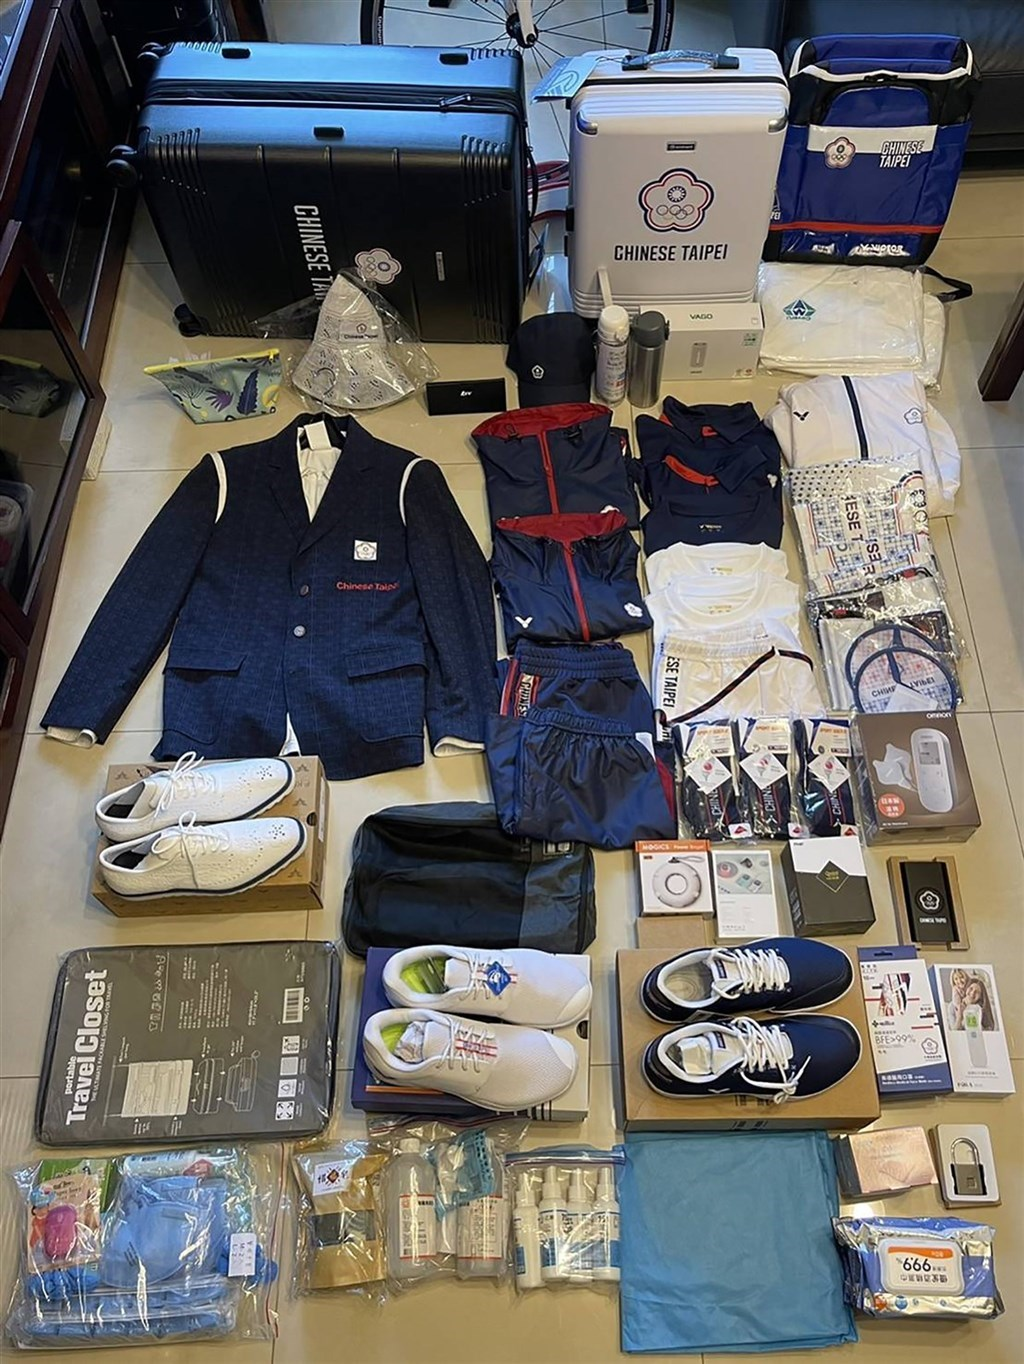 The standard kits issued to the athletes of Taiwan